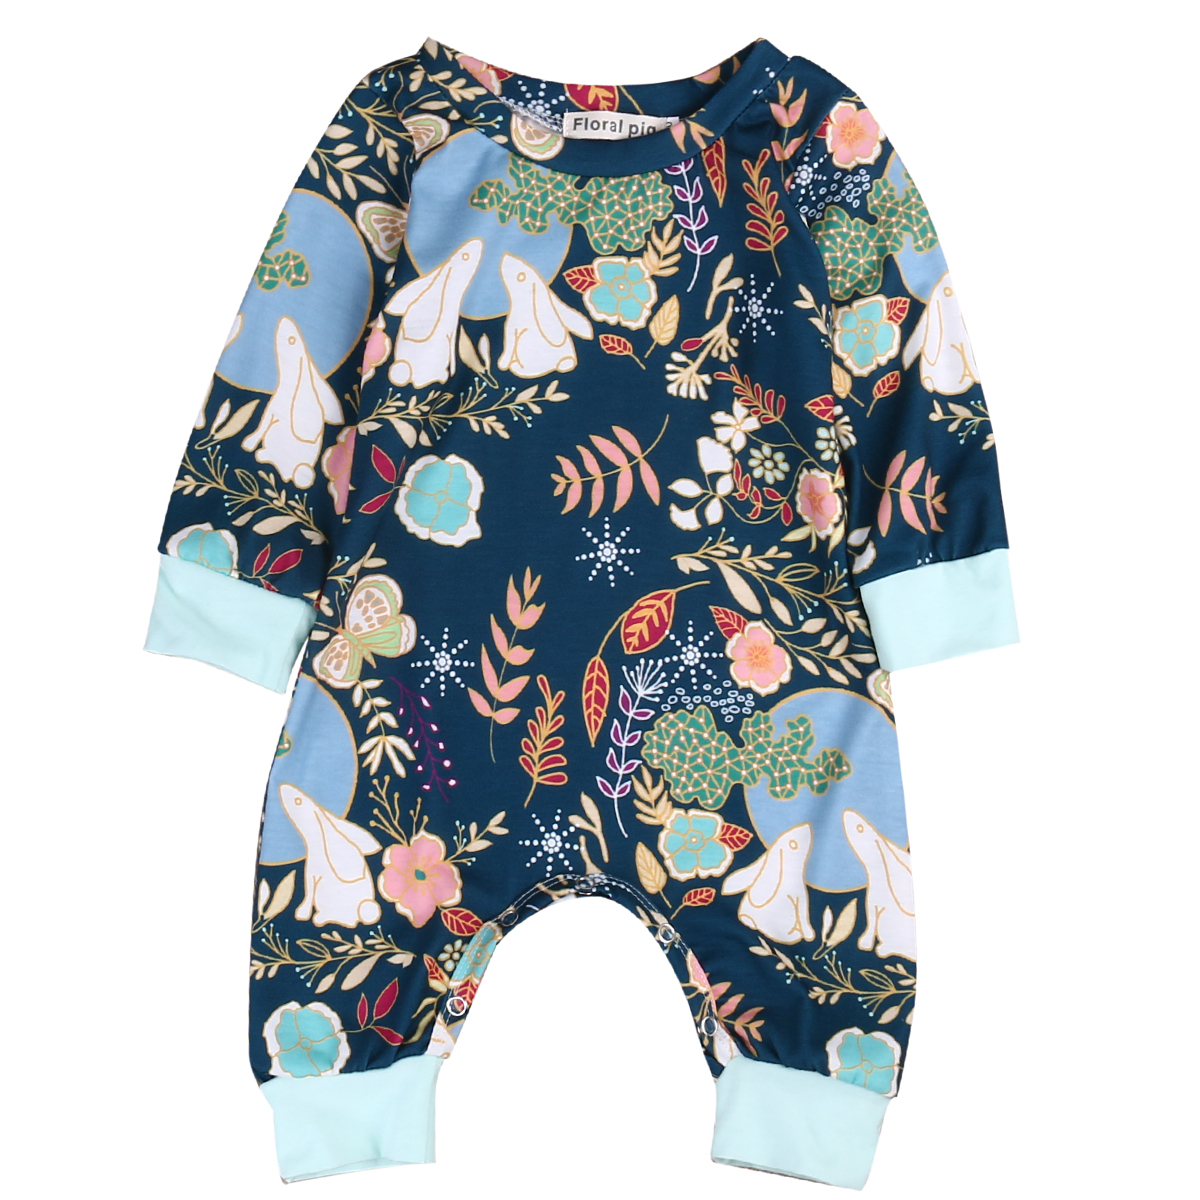 6a5651b2a1ee Cute Newborn Baby Girl Long Sleeve Romper Jumpsuit Clothes UK Stock ...